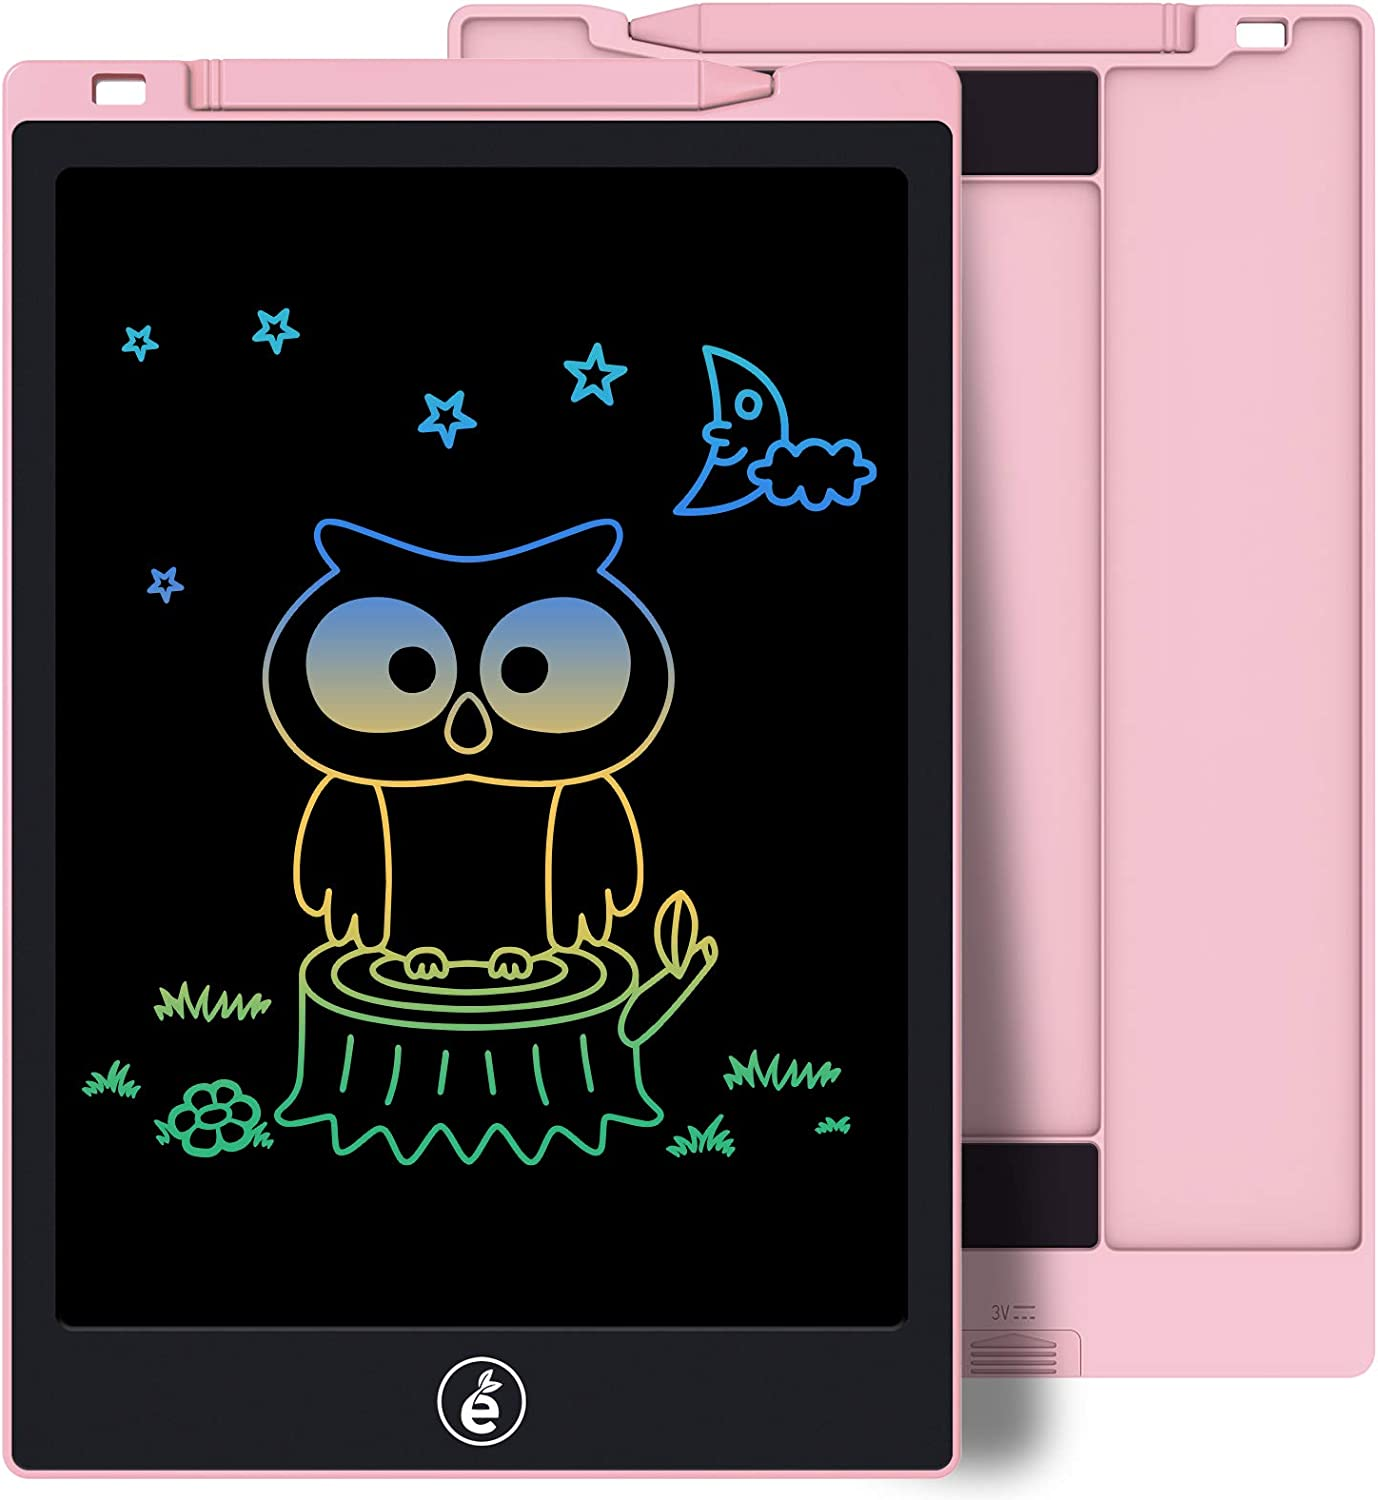 Kids Drawing Writing Boards LCD Writing Tablet, 11 Inch Electronic Colorful Screen Doodle Scribbler Board Writing Pad for Kids and Toddlers at Home, School and Kindergarten (Pink)